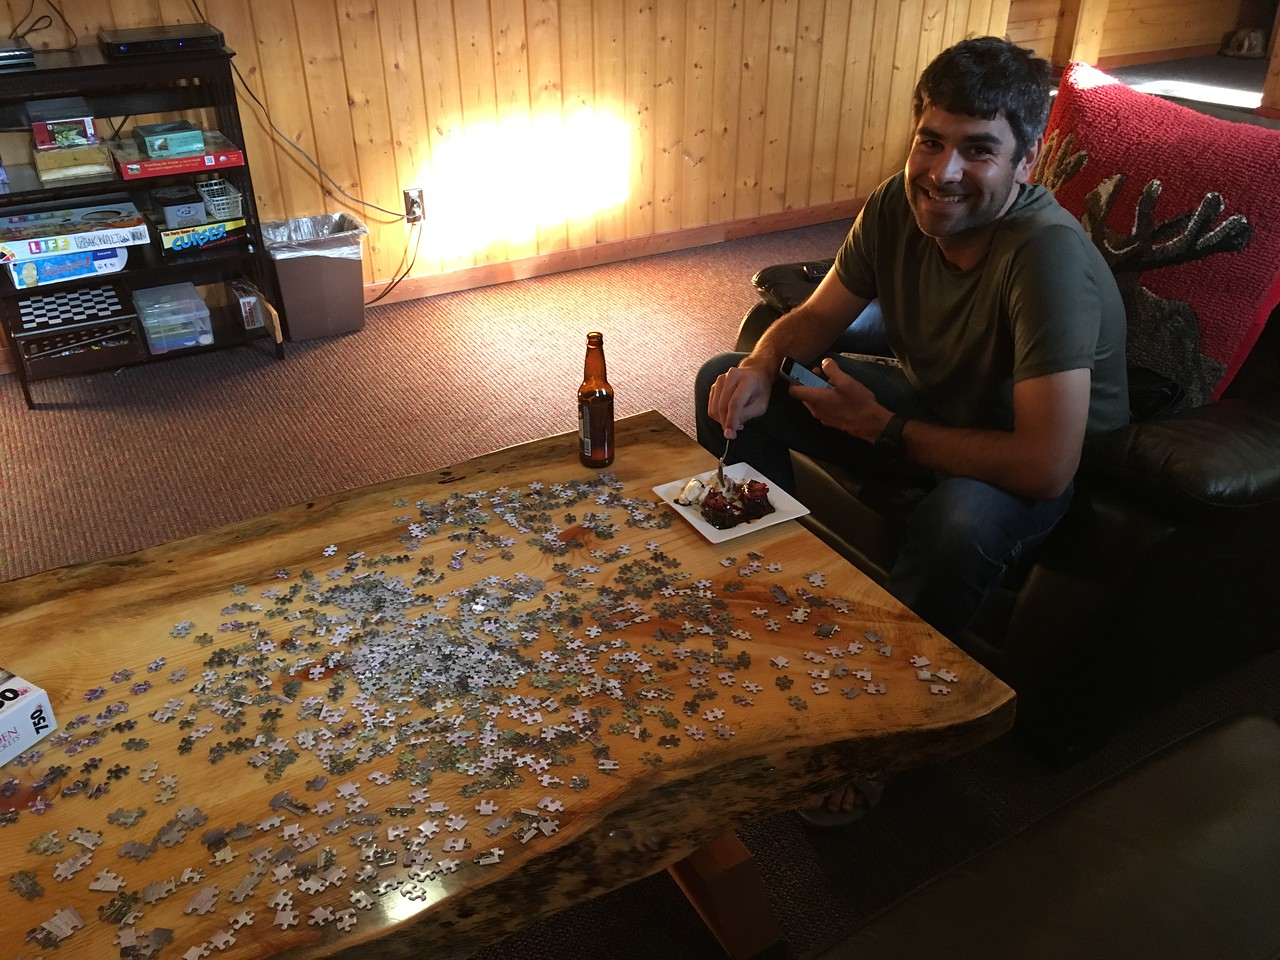 Beer, Desert, Puzzle. We know how to party!